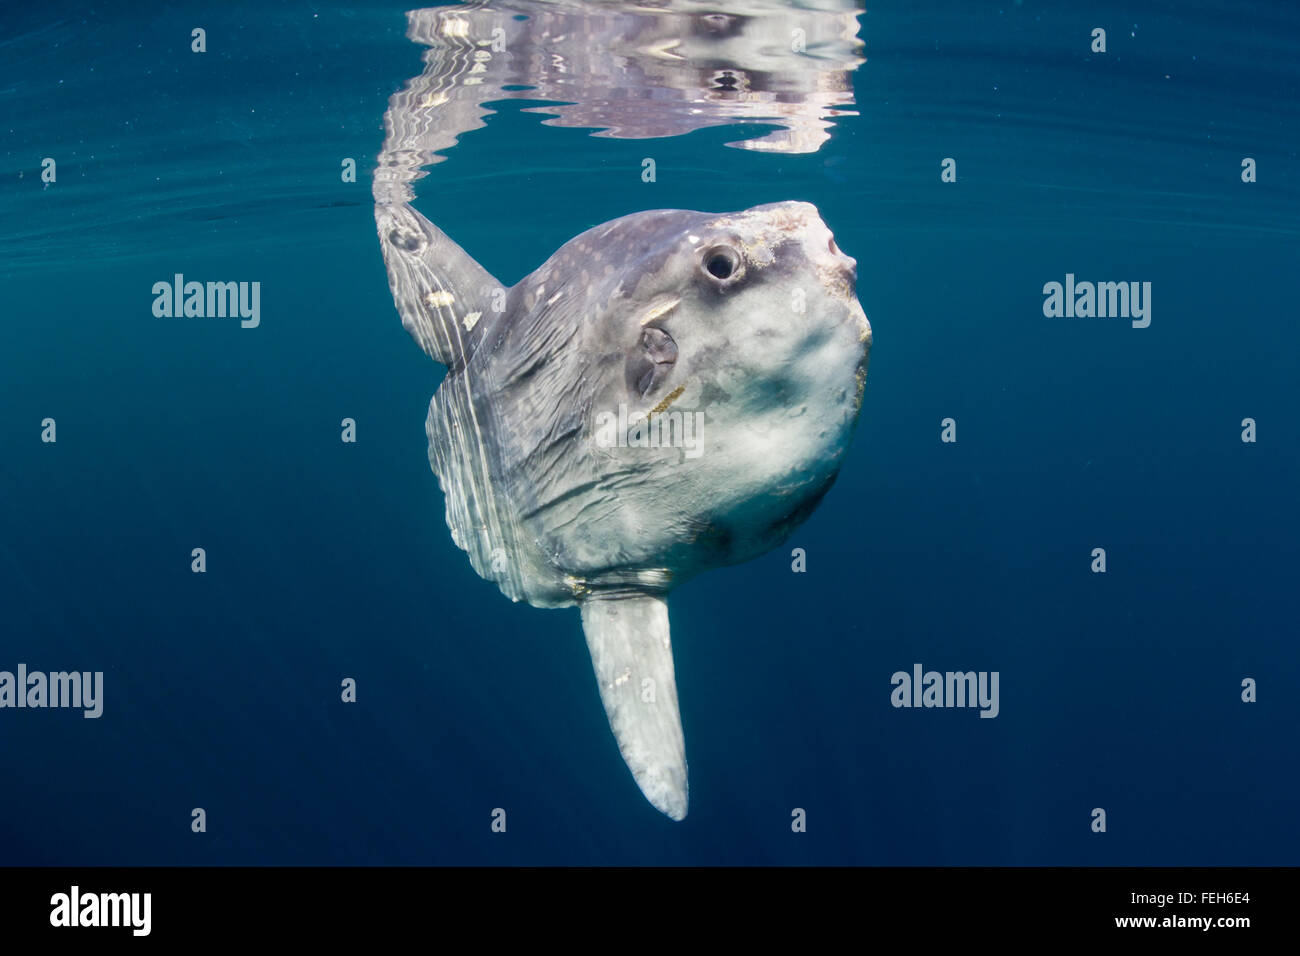 Ocean sunfish (Mola mola) basking at the surface in the clear, blue waters of the North Atlantic. A rare, summer - Stock Image